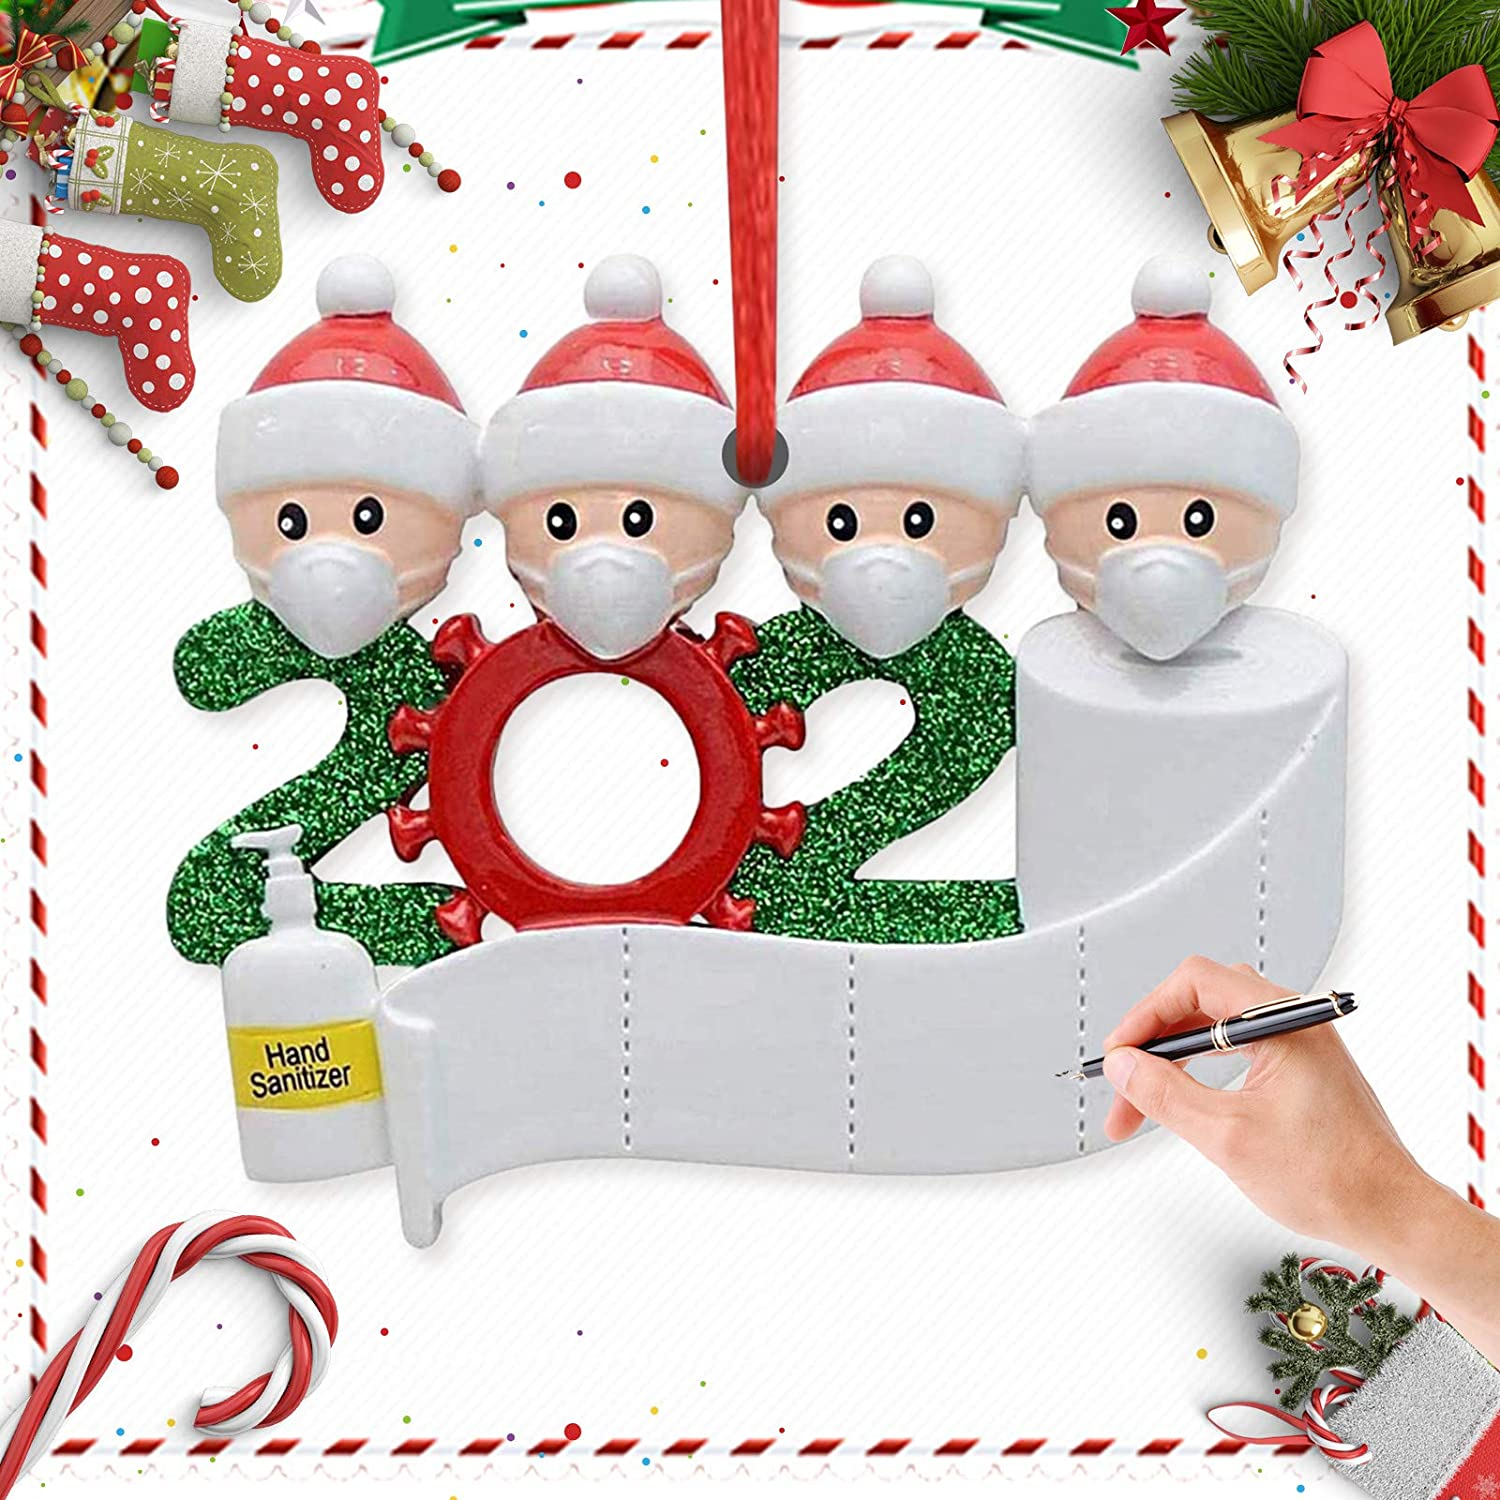 Lamantt Personalized Name Christmas Ornament Kit, Remember Family Ornament Christmas Decorating Set Creative Gift (Family of 4)